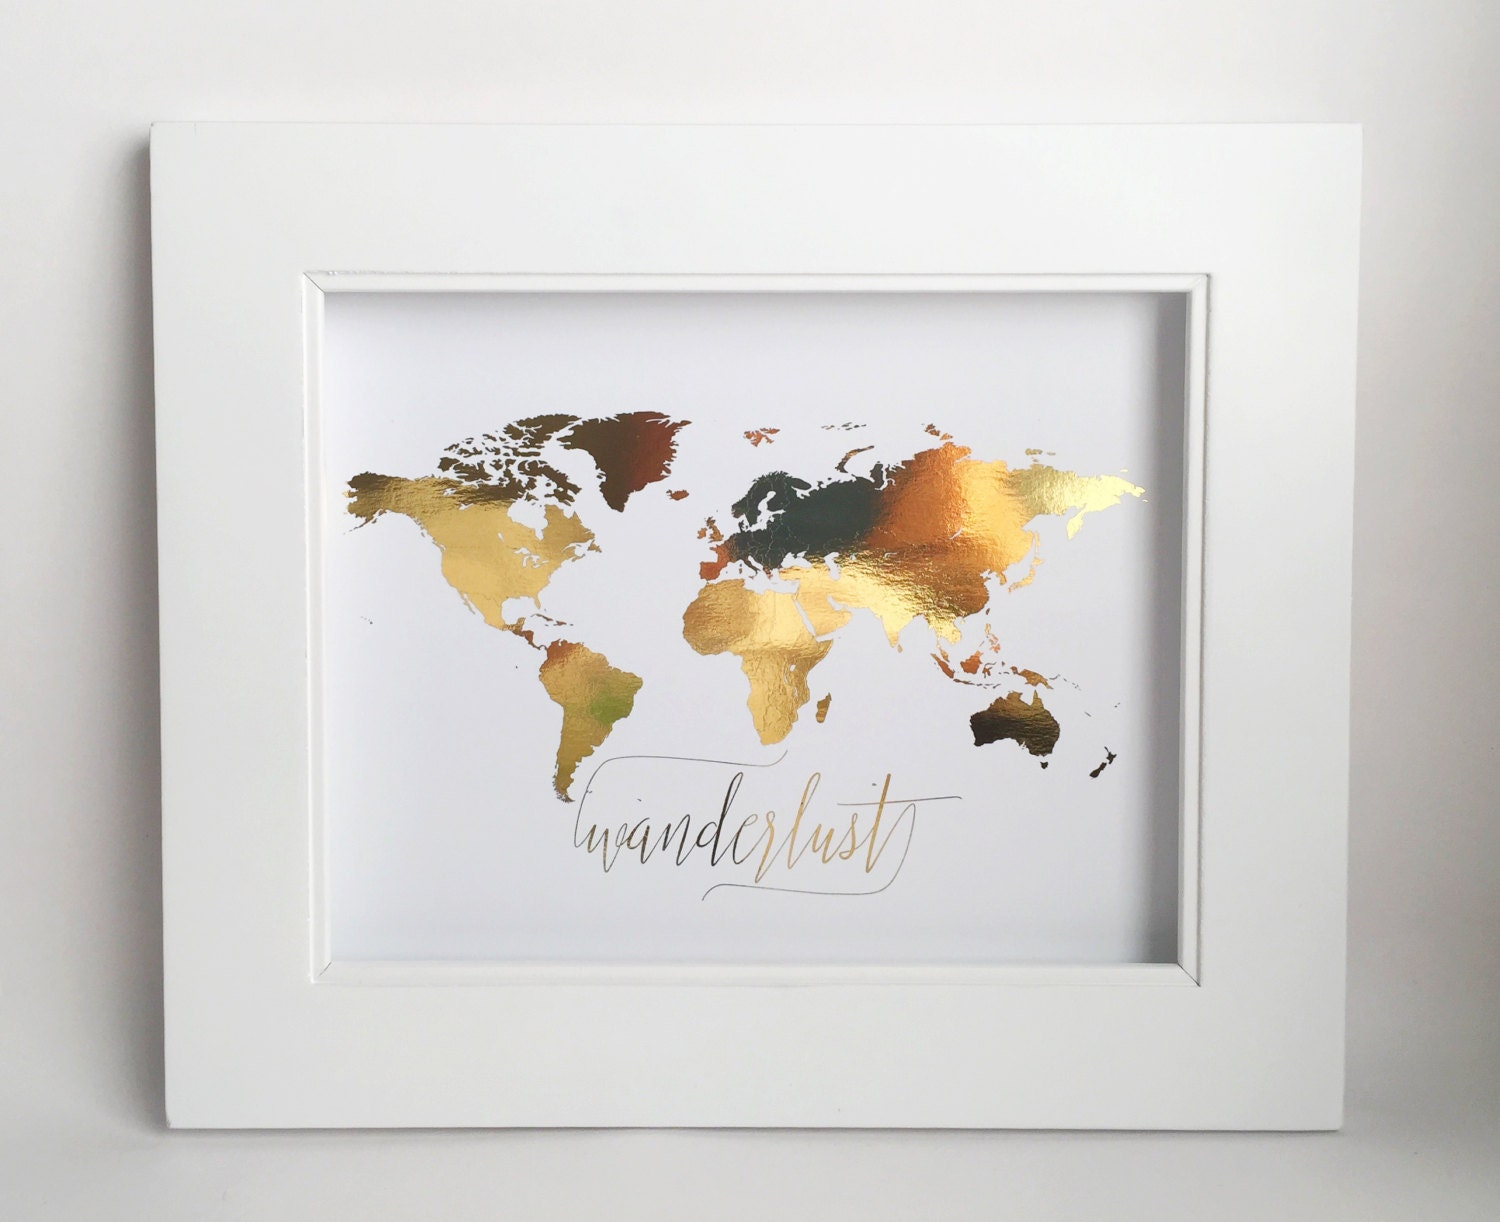 Wanderlust Wall Art, Real Gold Foil, World Map, Travel Map, Decor